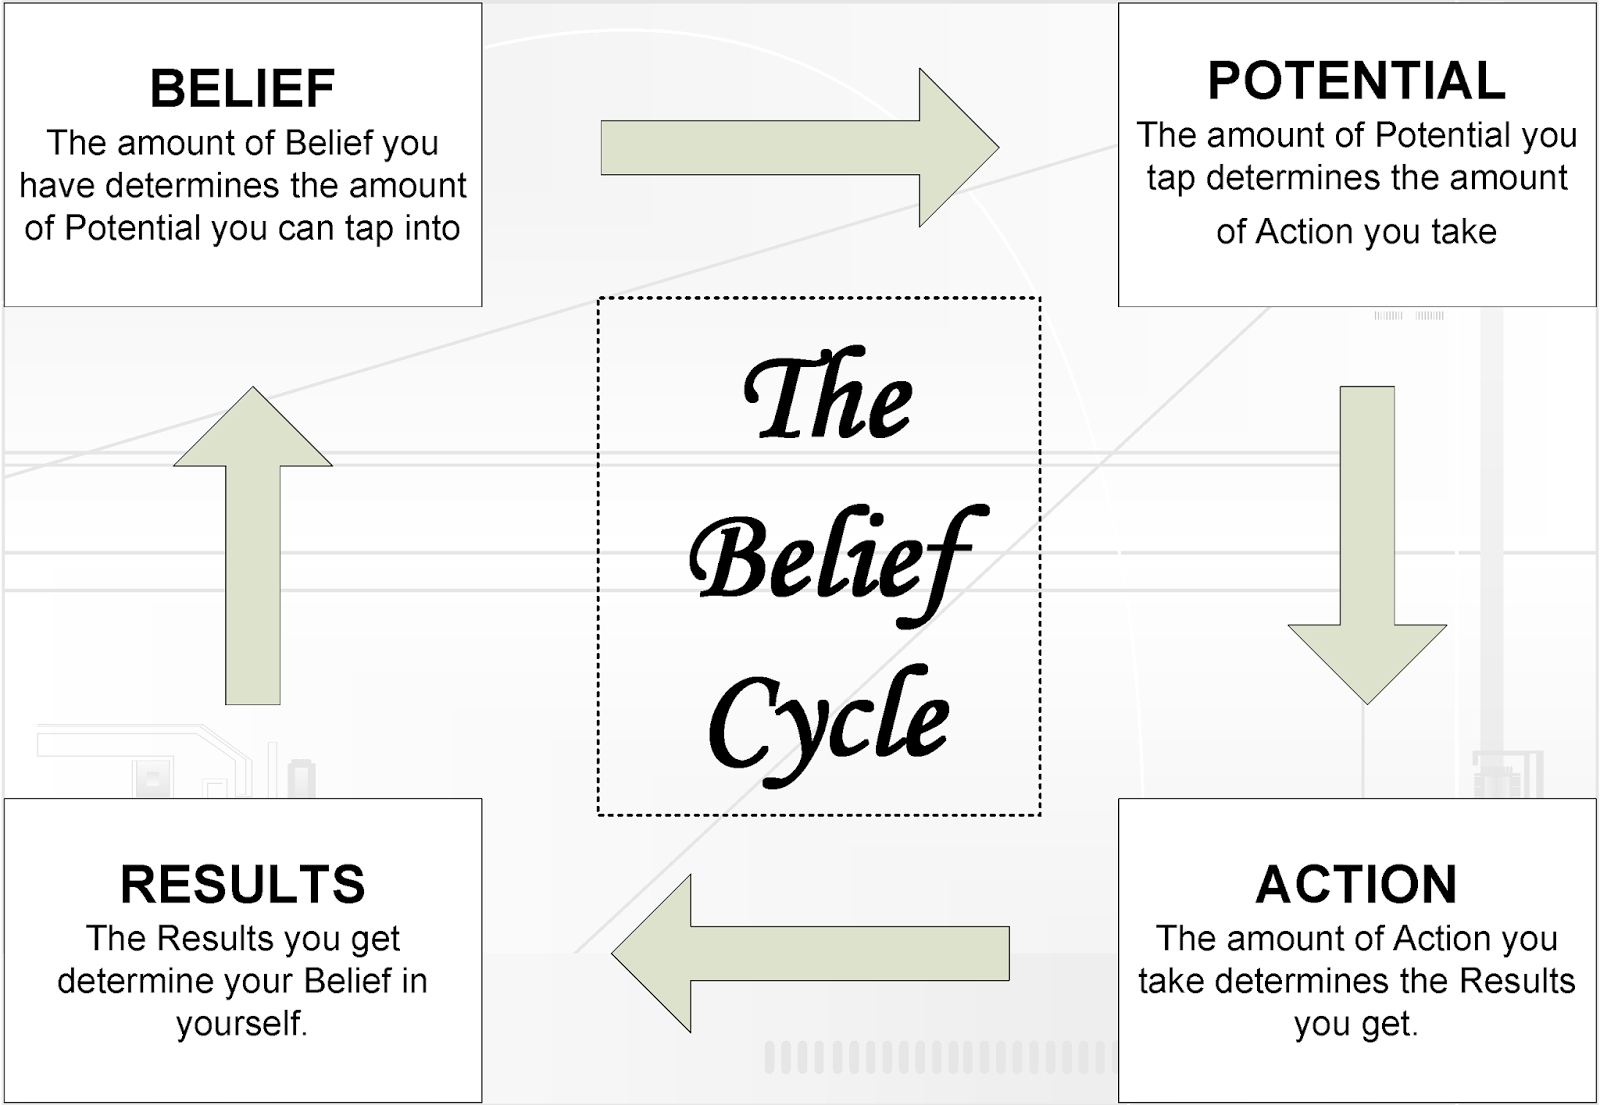 This Is The Progress Or Belief Cycle Tony Robbins Also